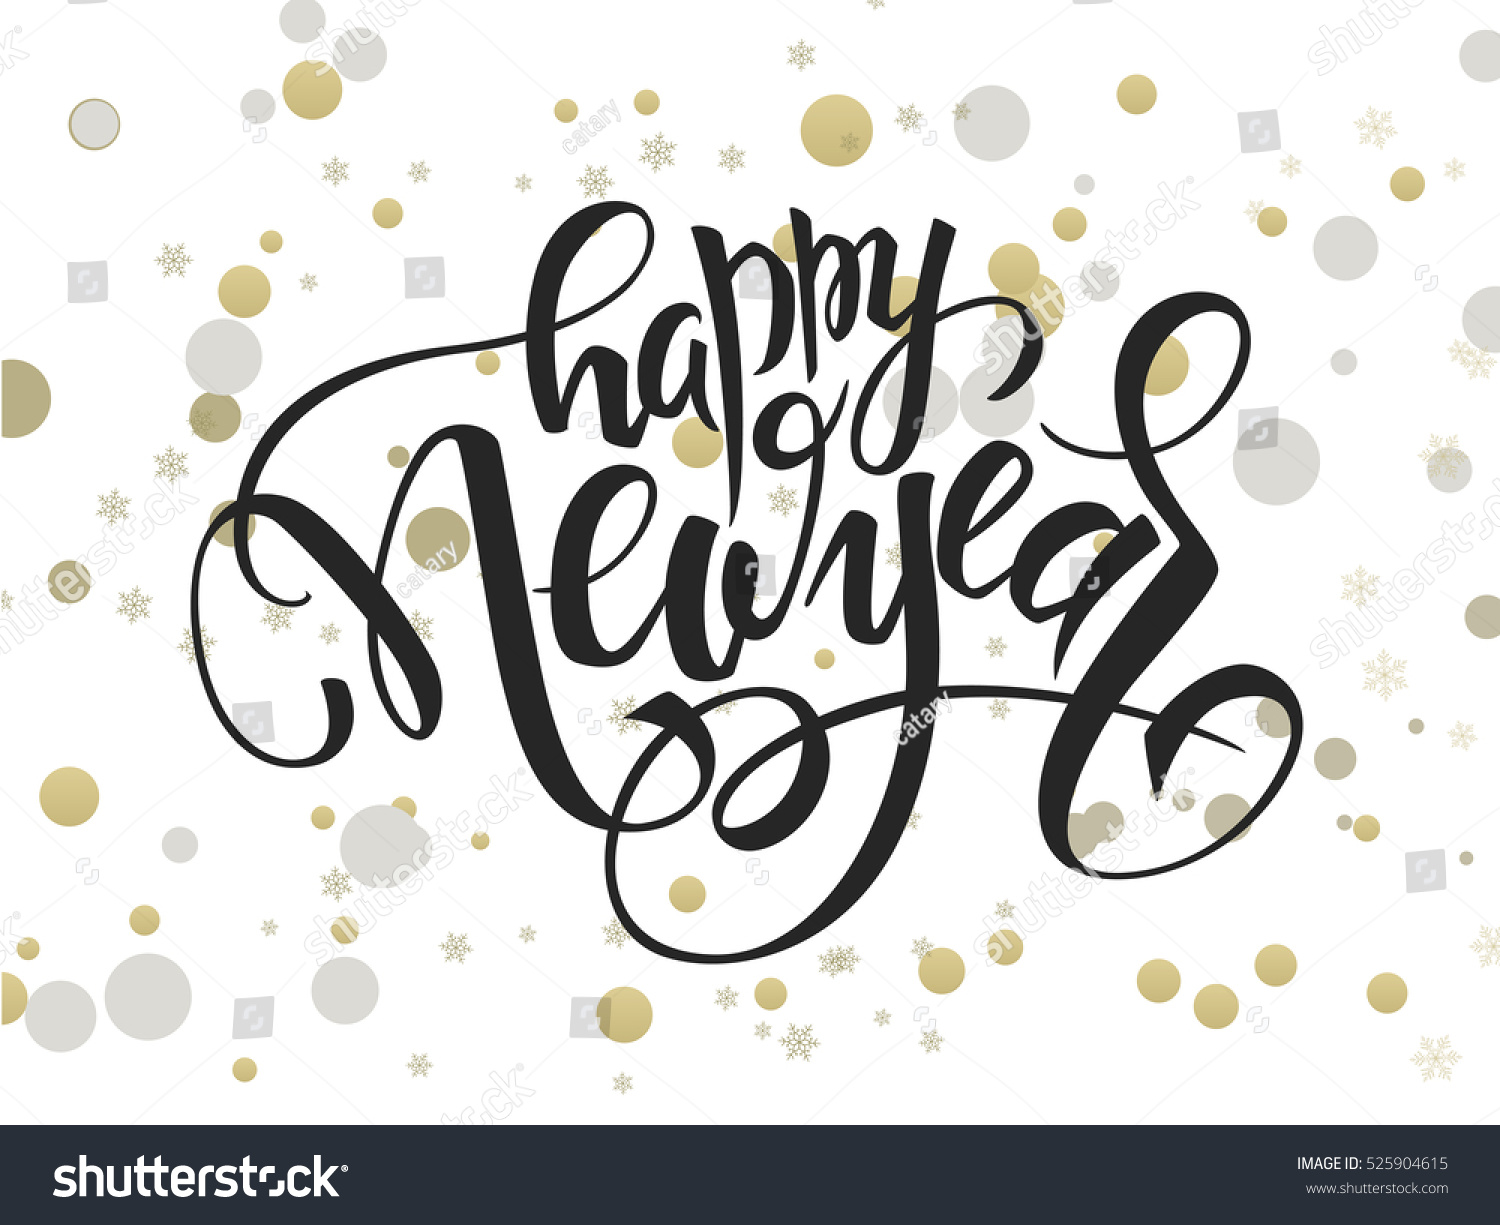 vector hand lettering new year greetings text with ellipses in gold ...